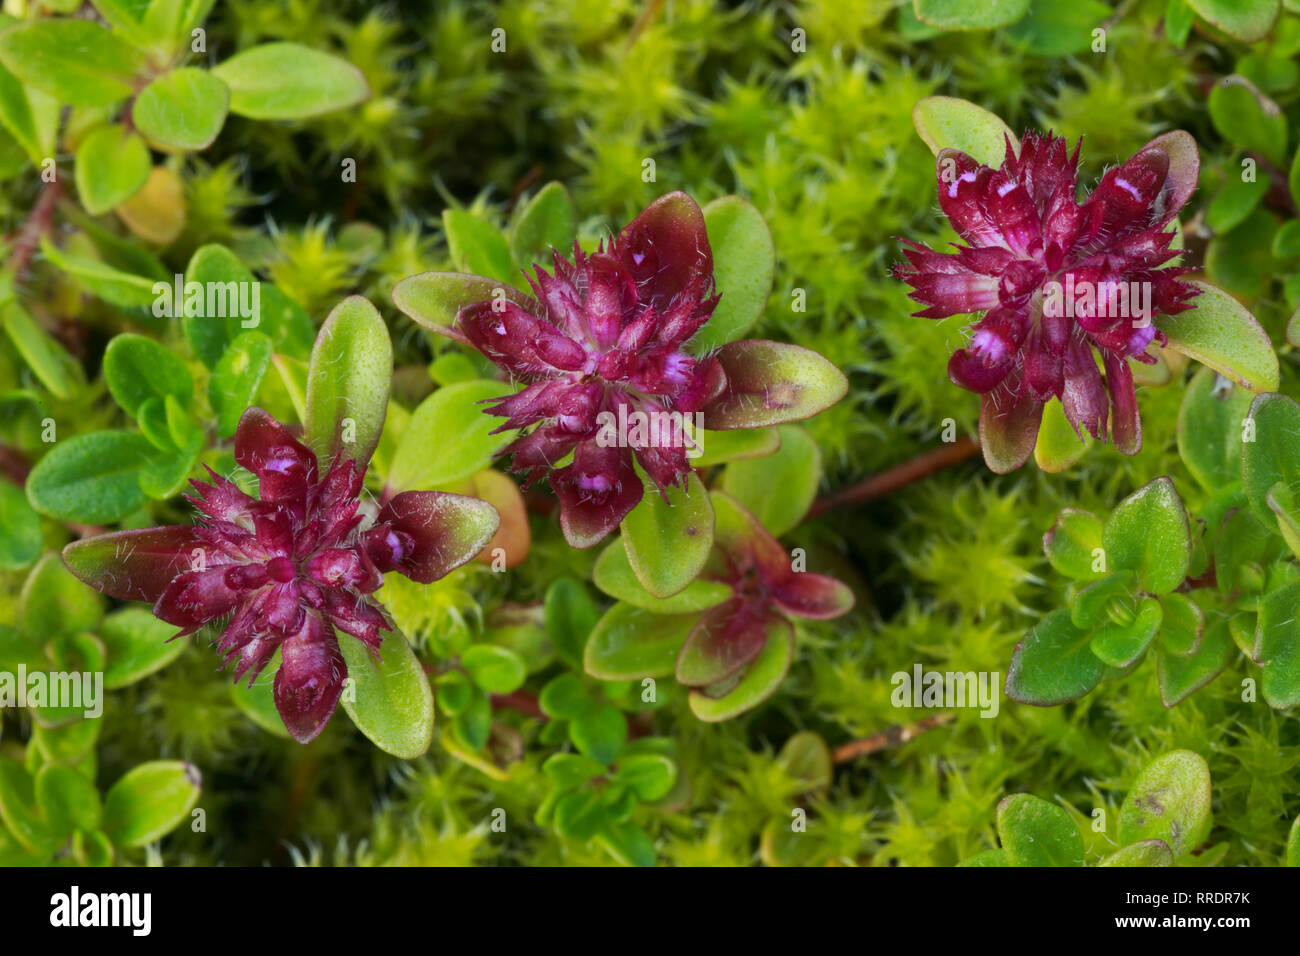 botany, savage thyme, thymus serpyllum, Breckland thyme, Switzerland, Additional-Rights-Clearance-Info-Not-Available - Stock Image